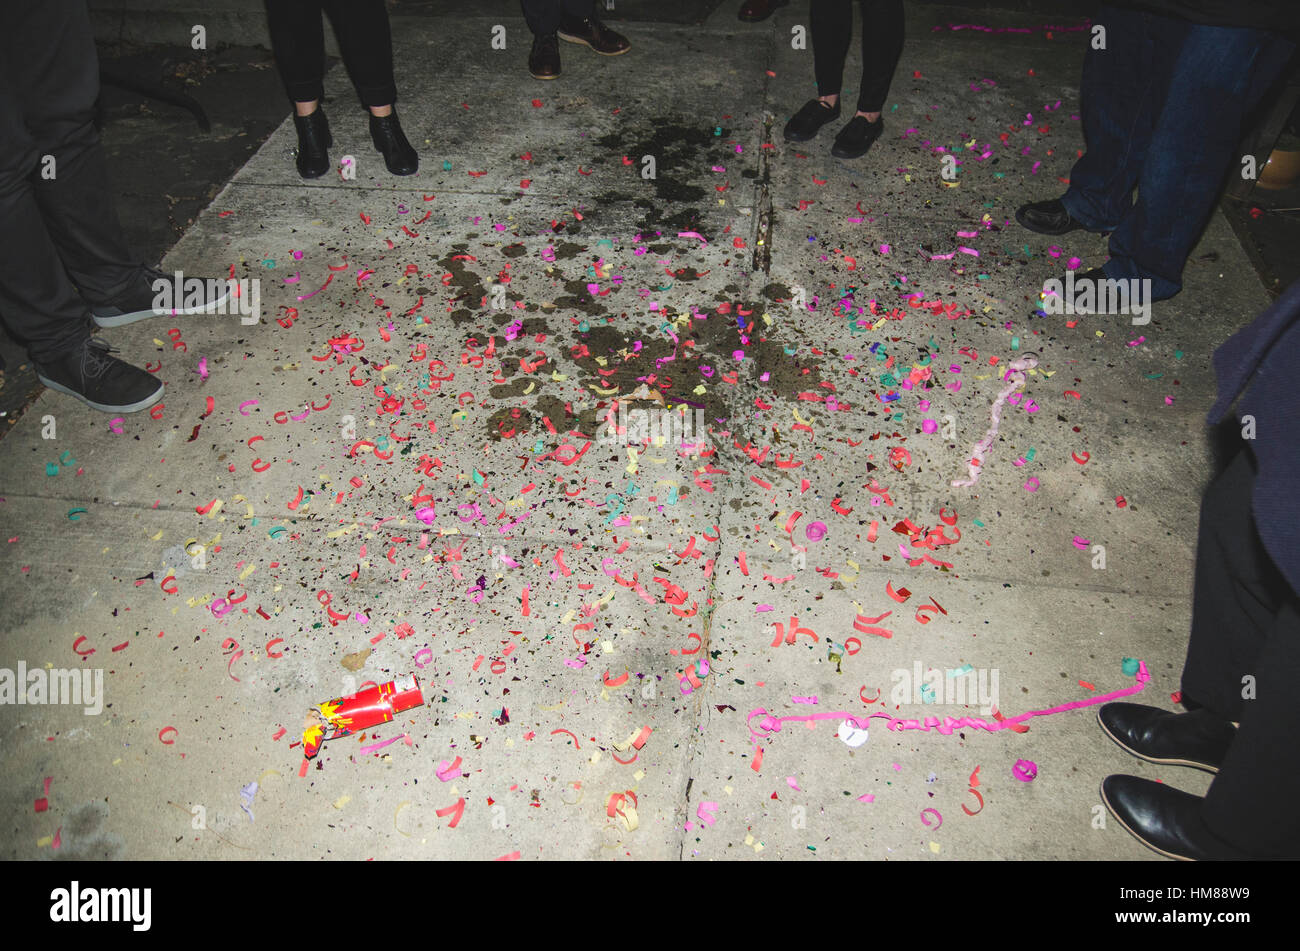 Aftermath of New Year's Eve Celebration - Stock Image